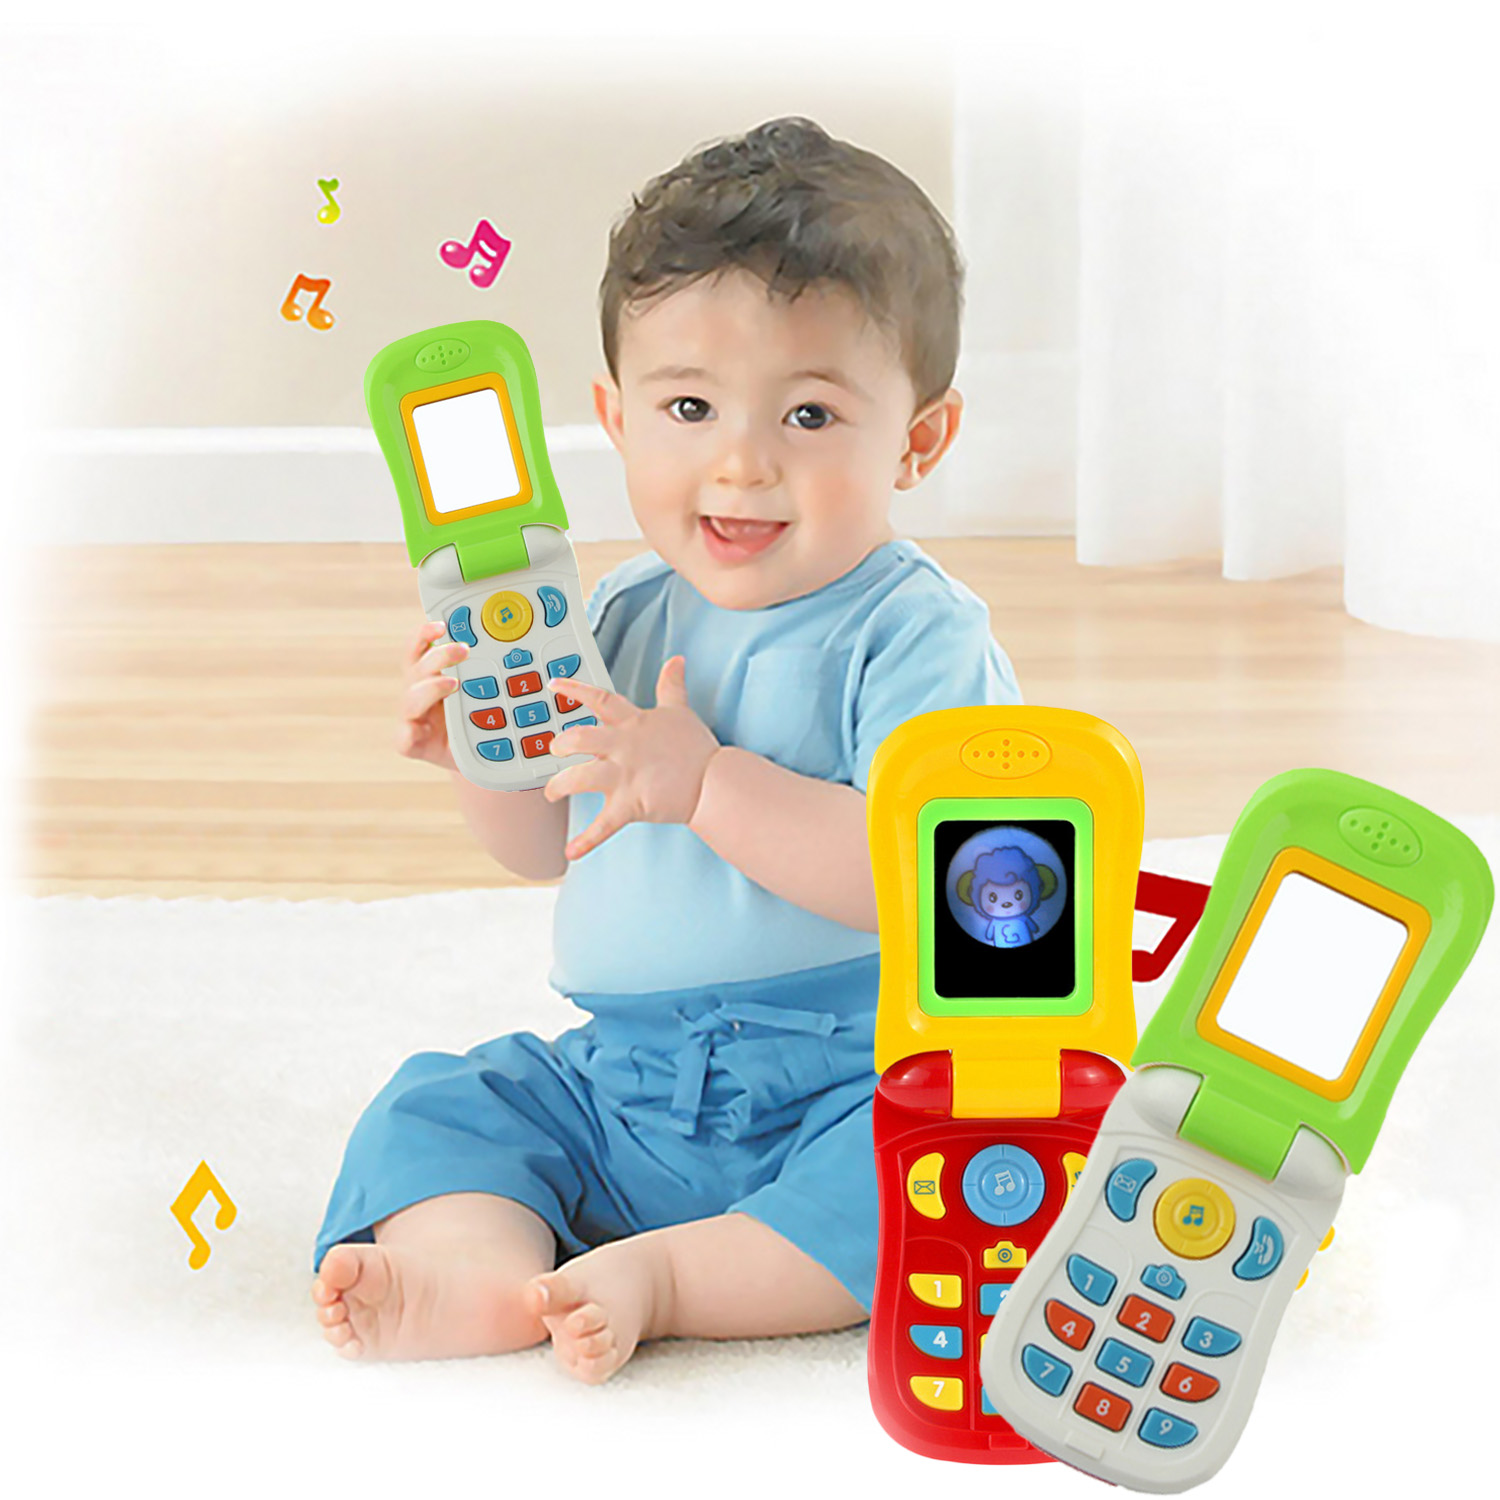 Funny Cute Simulation Flip Cell Mobile Phone Educational Toy With Mirror Lights Music For Kids Children Birthday Christmas Gift